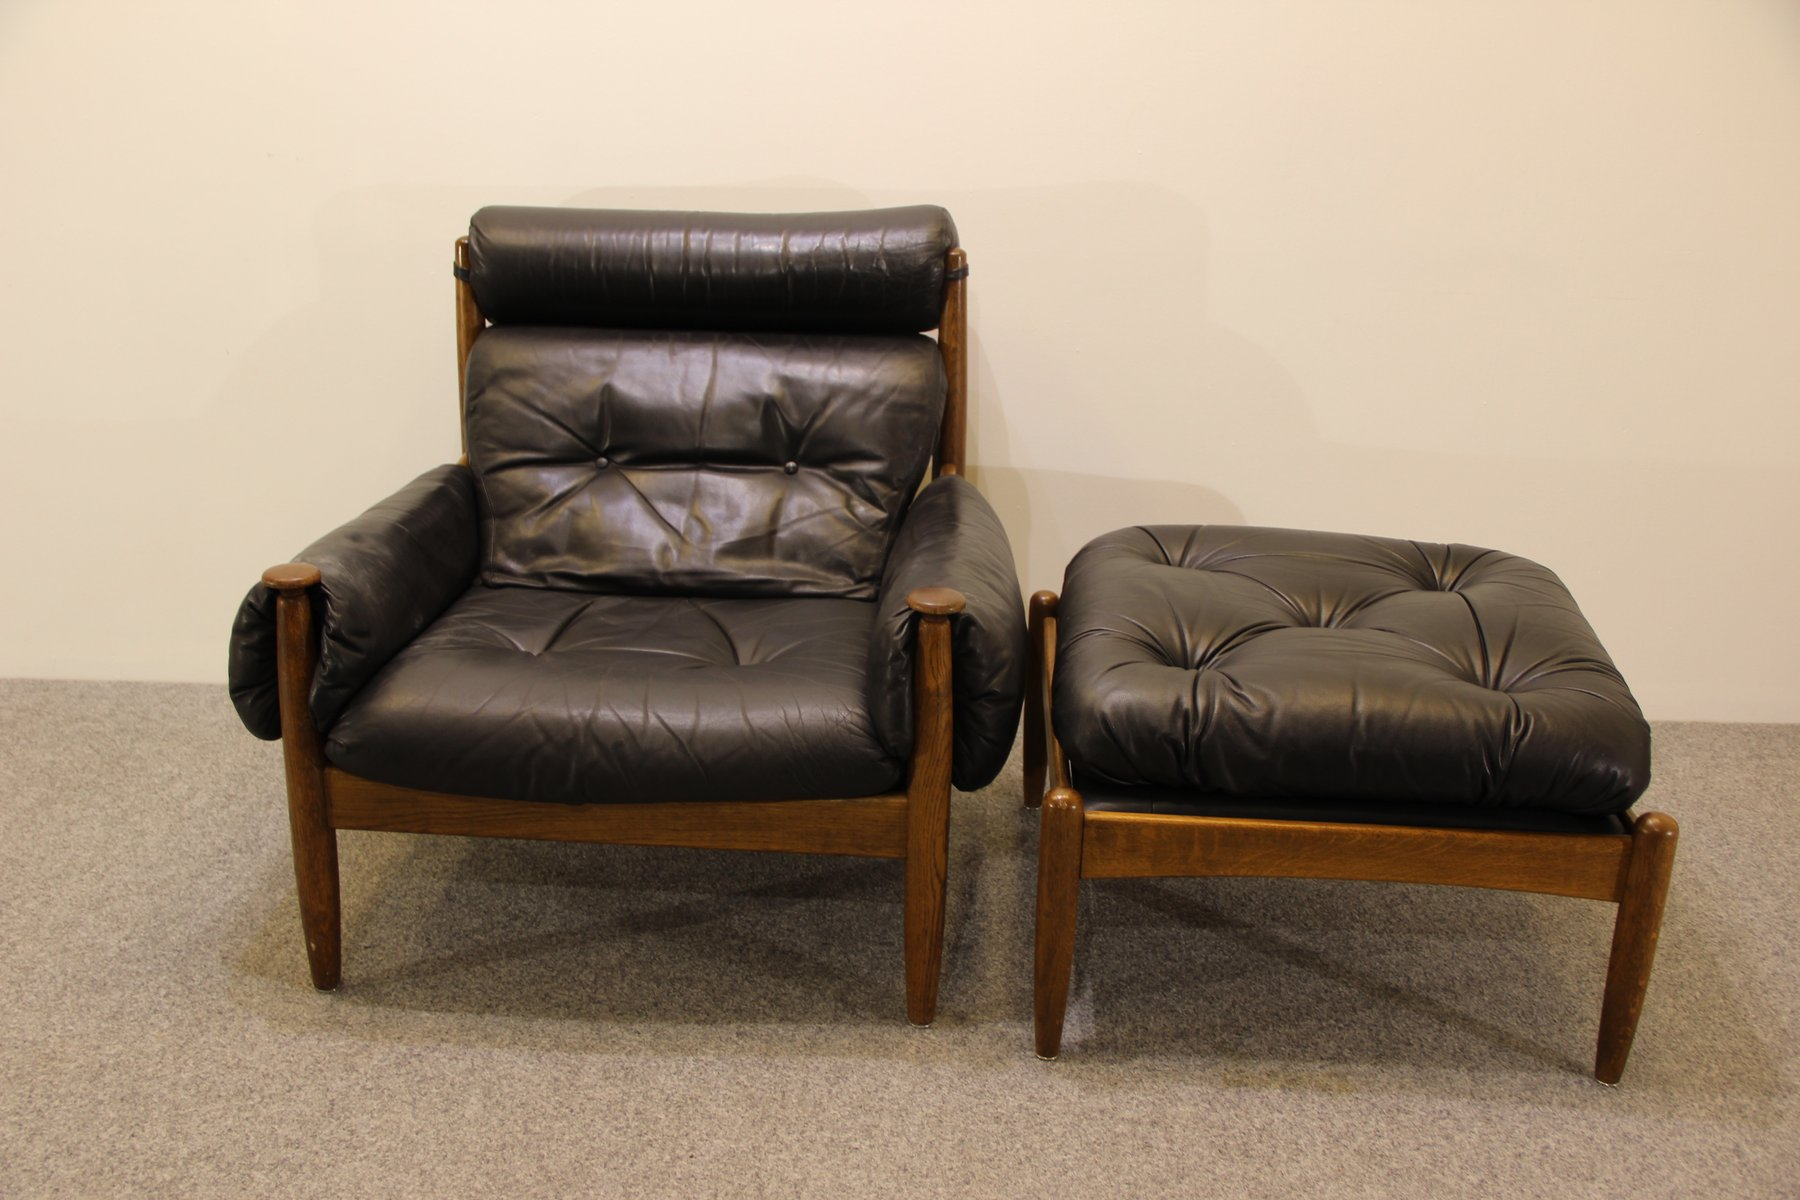 mid century sessel ottoman von eric merthen bei pamono. Black Bedroom Furniture Sets. Home Design Ideas